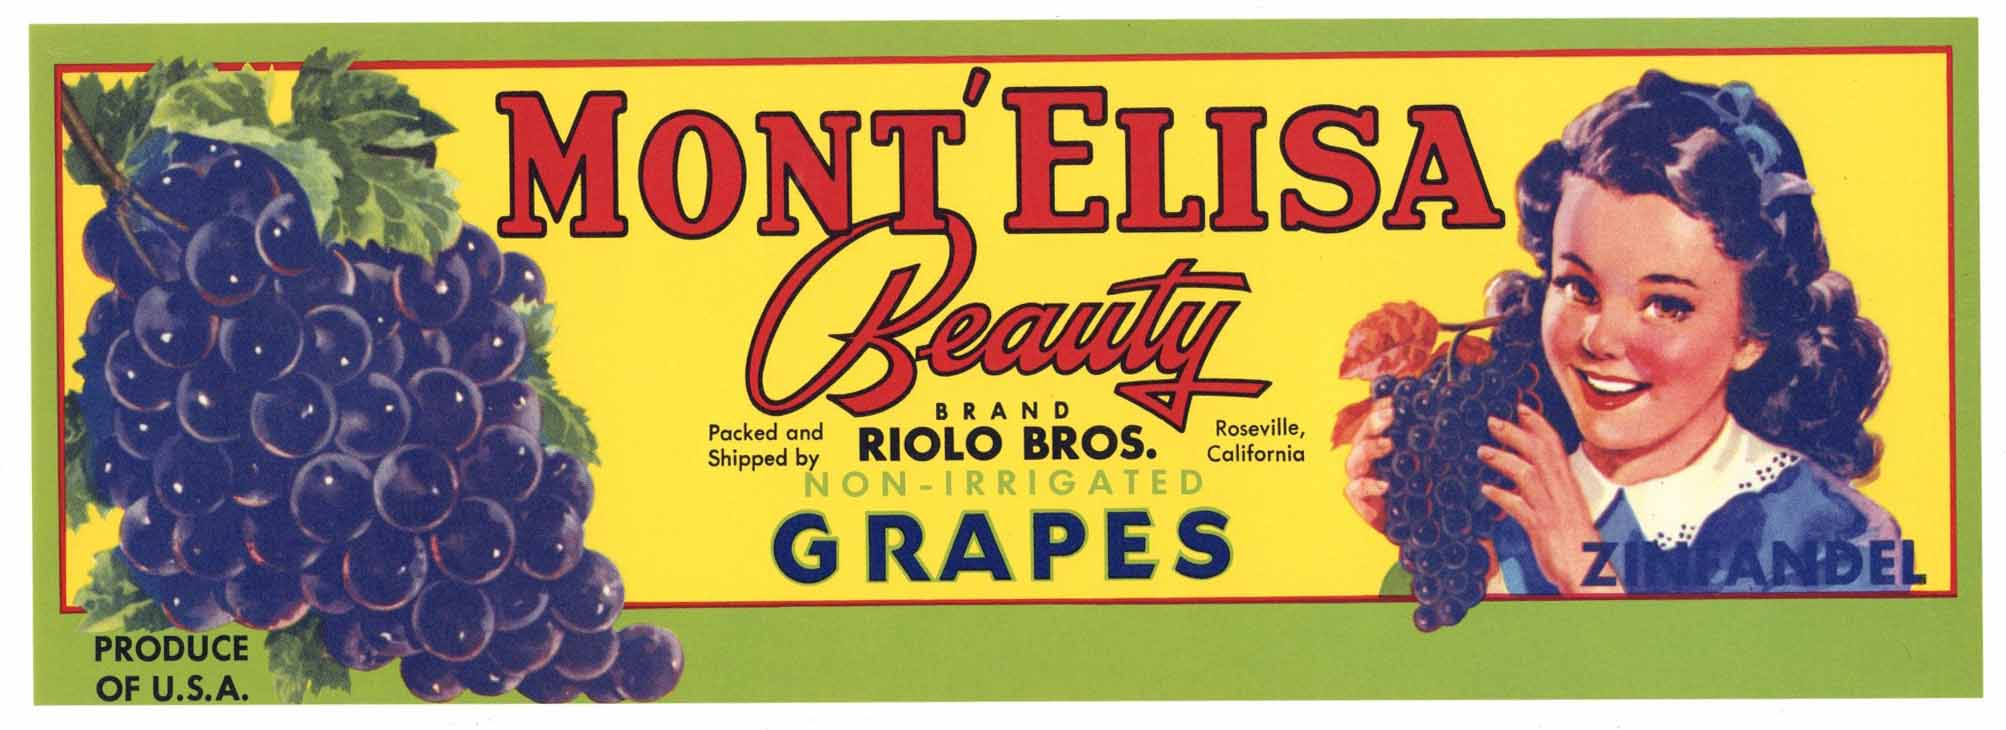 Mont' Elisa Brand Vintage Roseville Grape Crate Label